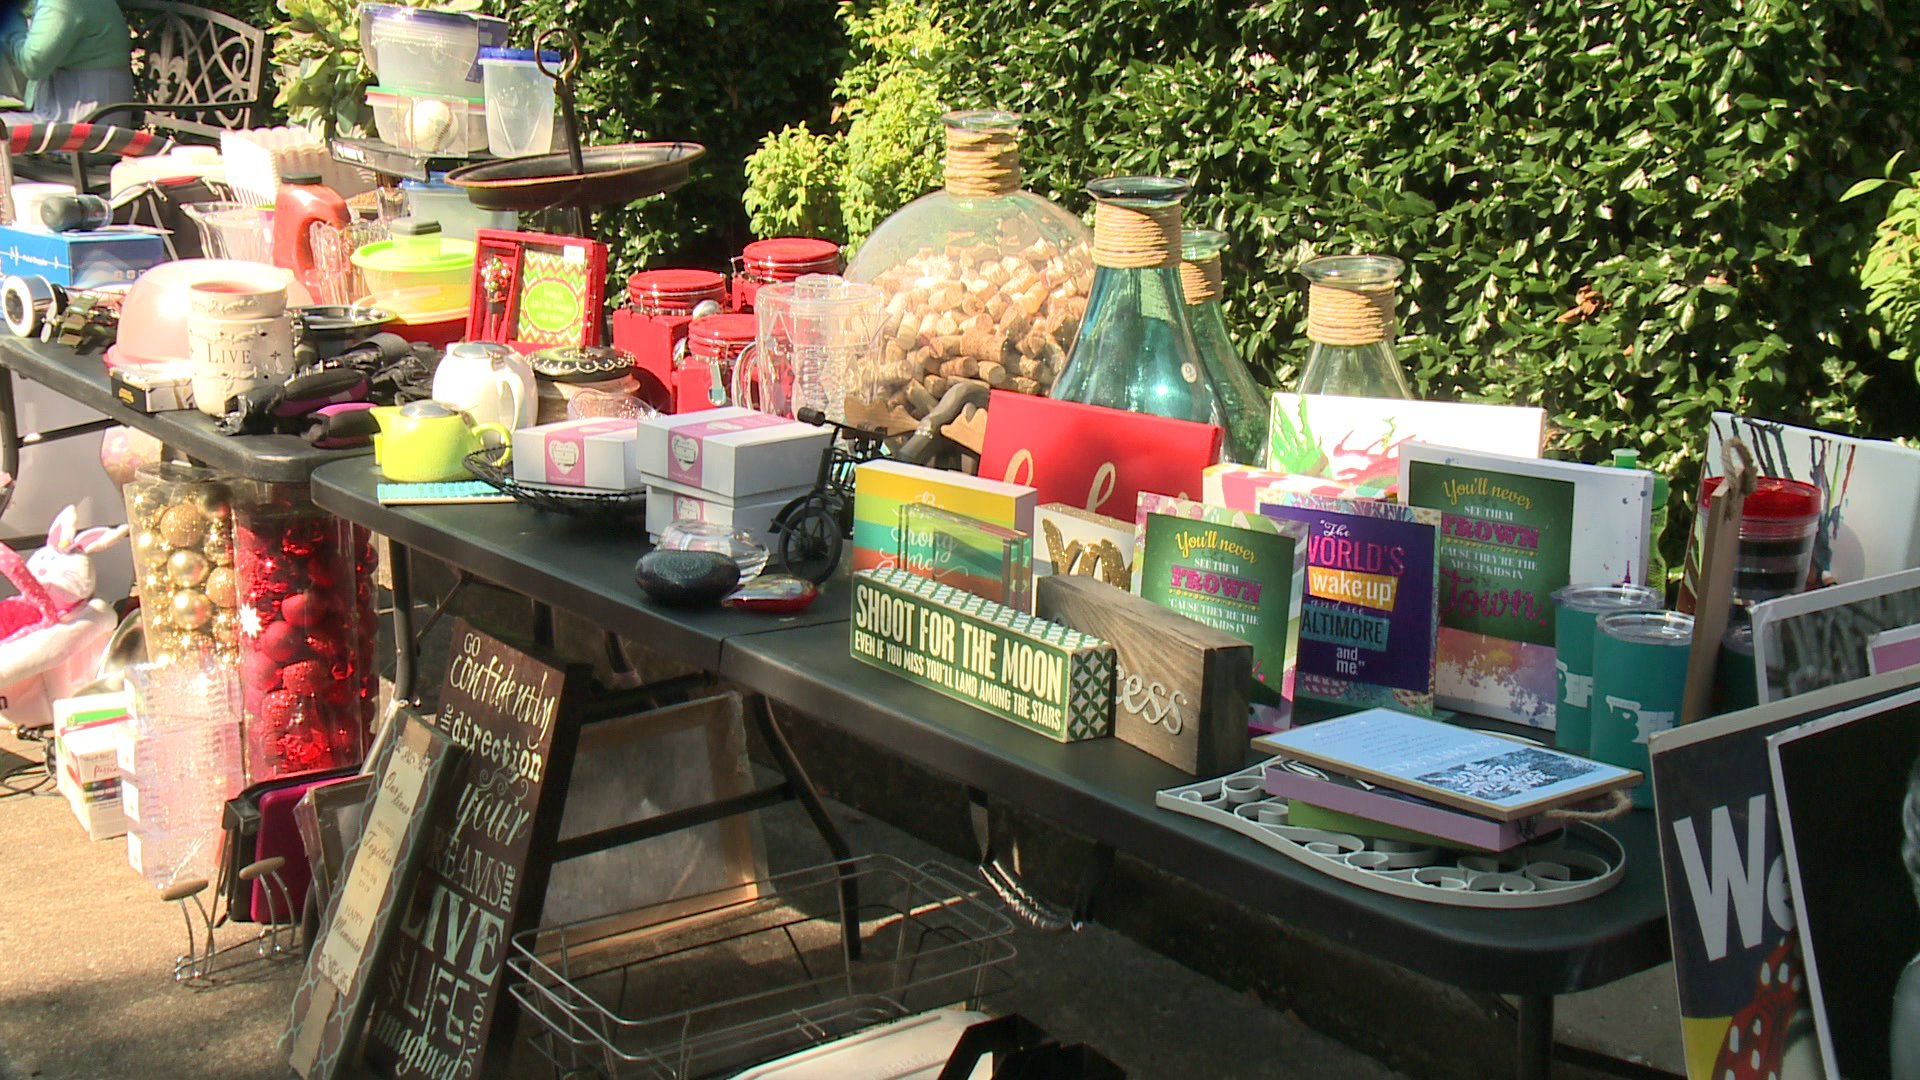 NWA American Heart Affiliation Hosts Yard Sale To Elevate Money thumbnail